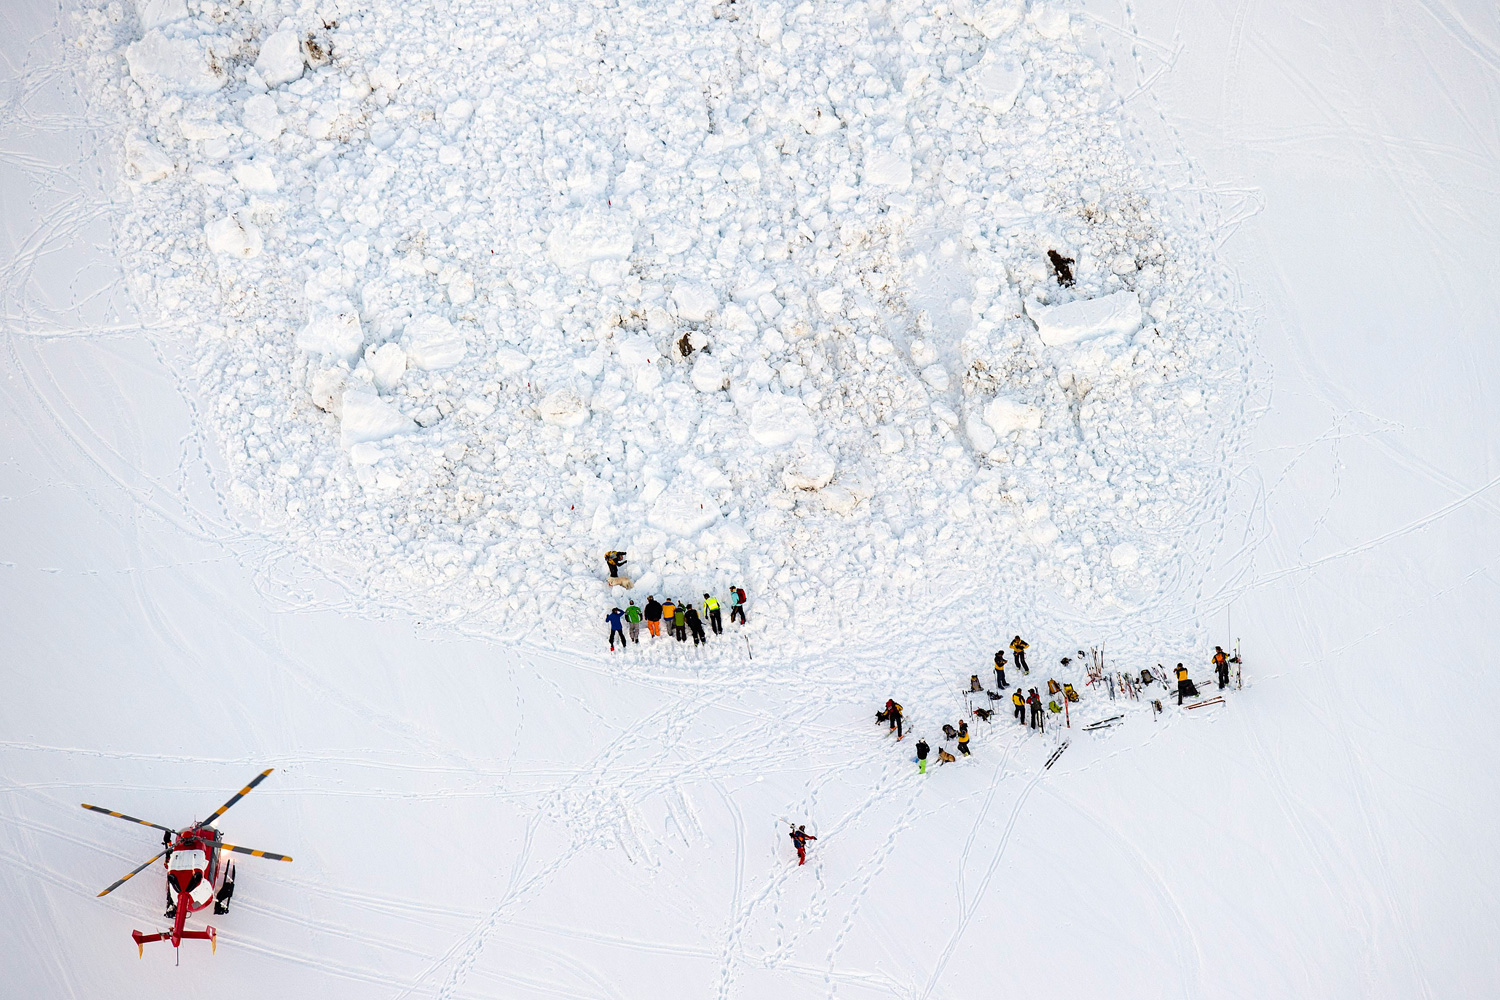 Feb. 29, 2012. An aerial view shows rescuers searching for persons under an avalanche at Col de la Croix in the Skiing area The Diablerets, Switzerland.